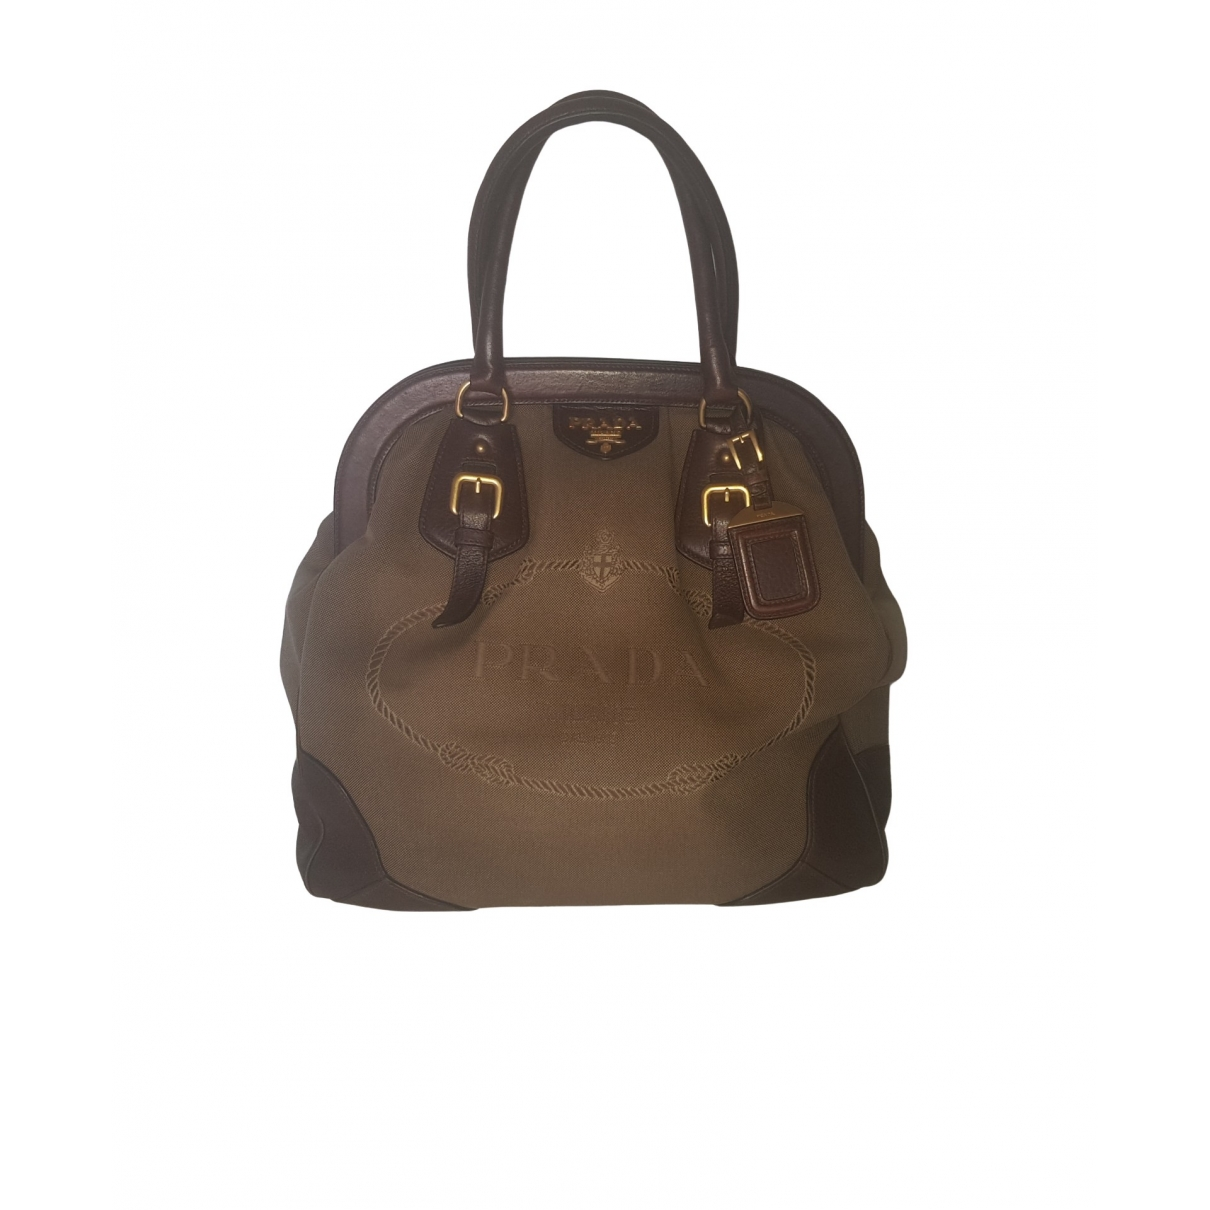 Prada \N Beige Cloth handbag for Women \N